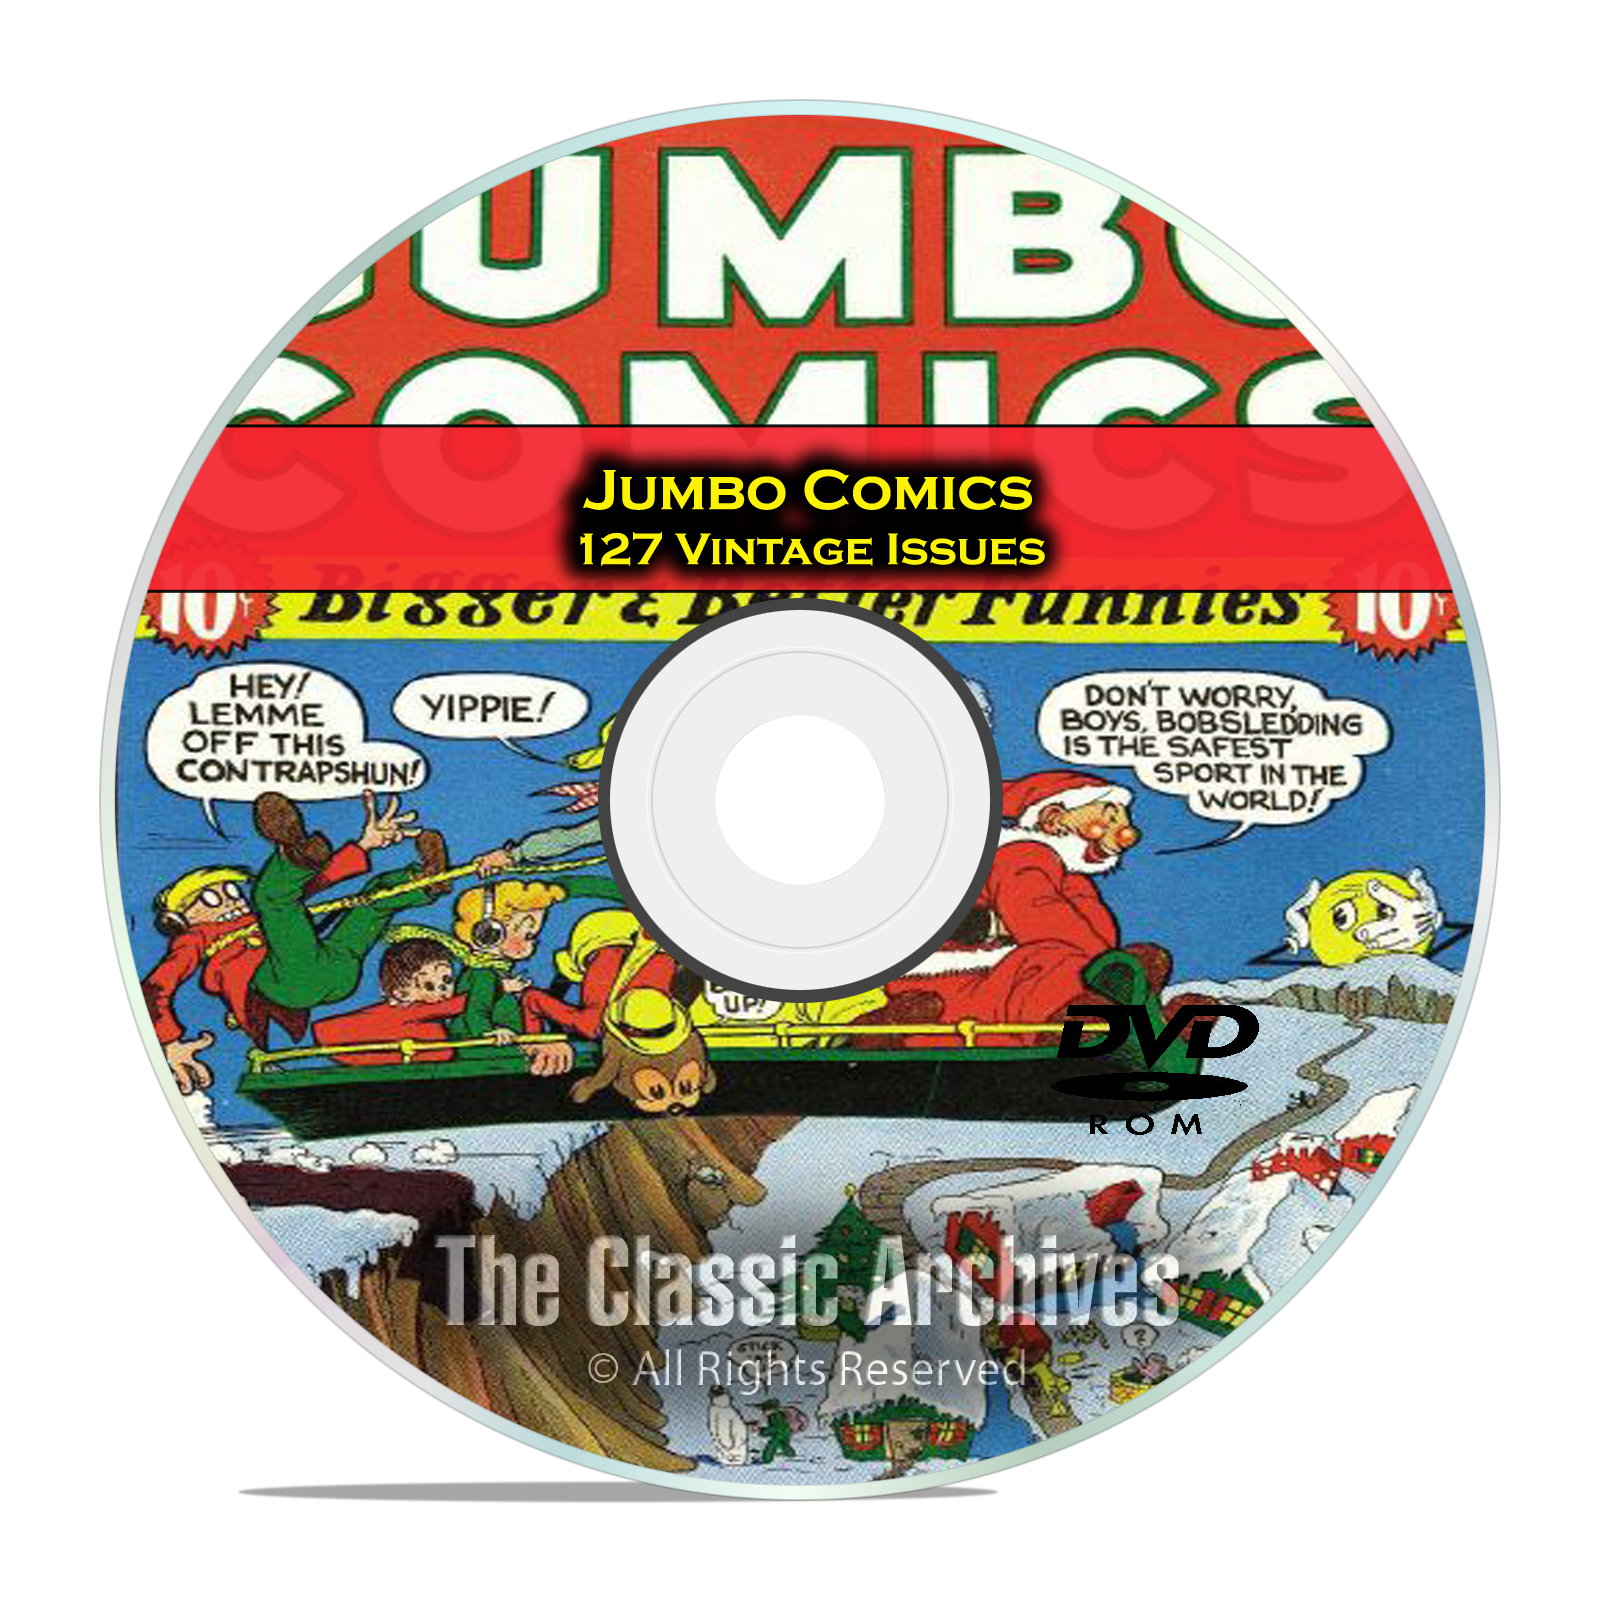 Jumbo Comics, Fiction House, 127 Issues, Vintage Golden Age Comics PDF DVD